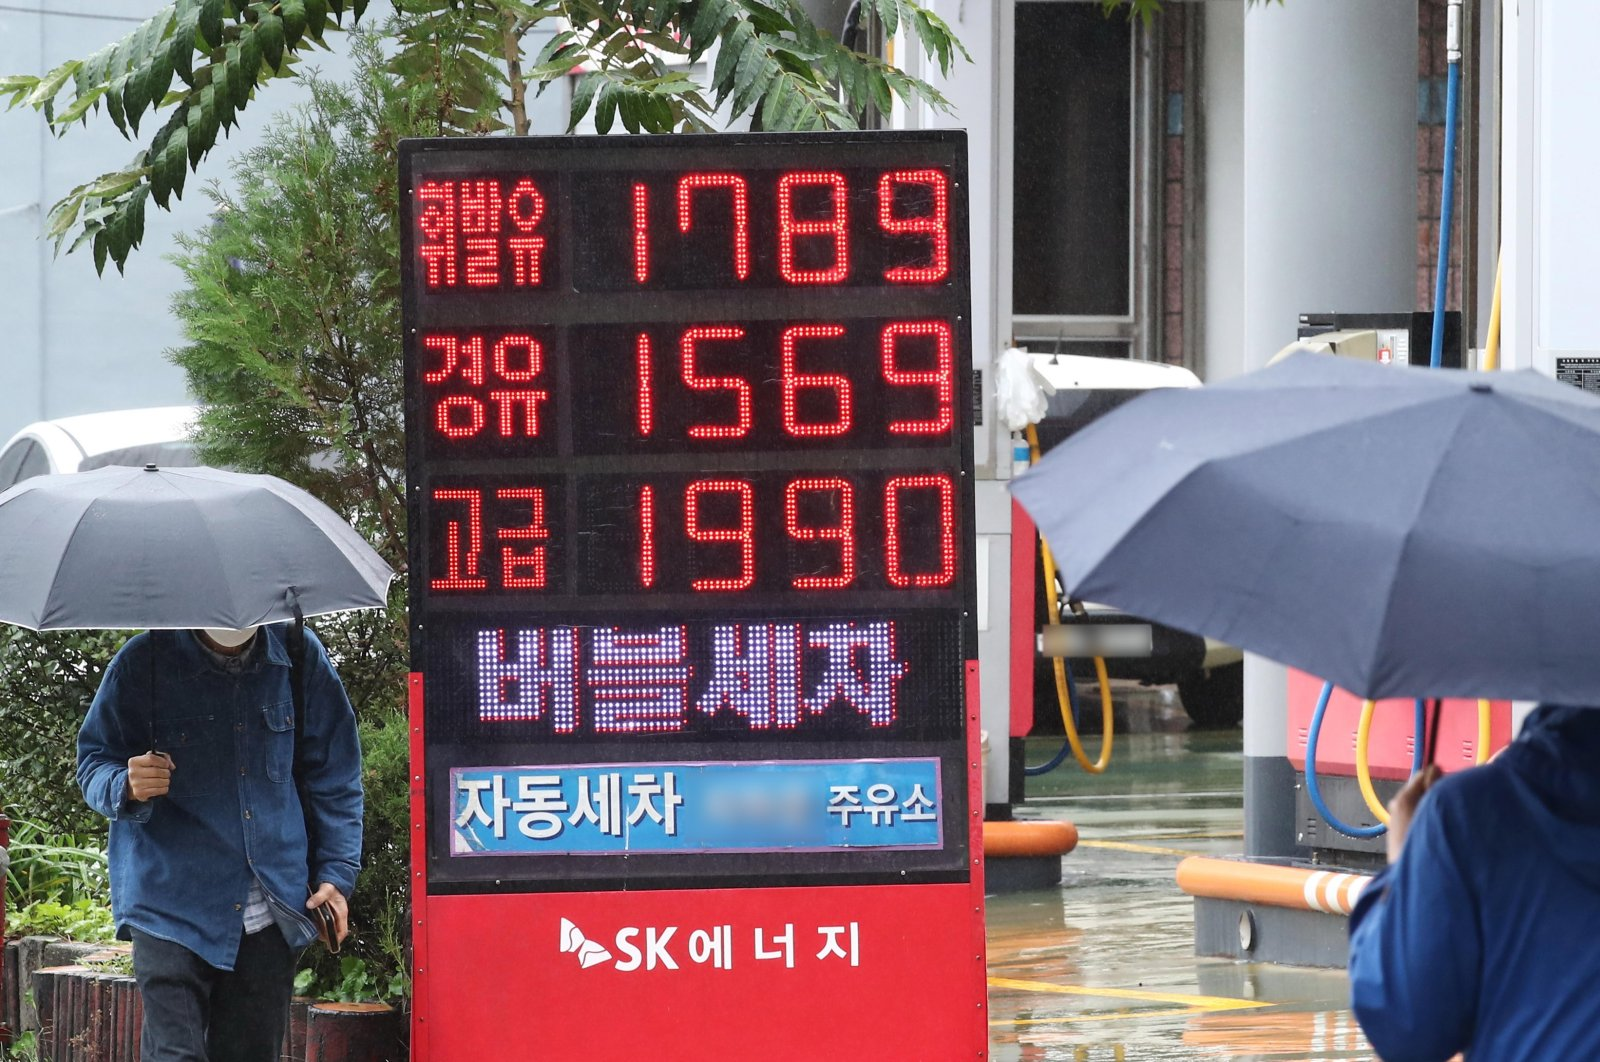 A view of a gas station's price display selling gasoline at 1,789 won ($1.50) per liter in Seoul, South Korea, Oct. 2021. (EPA Photo)